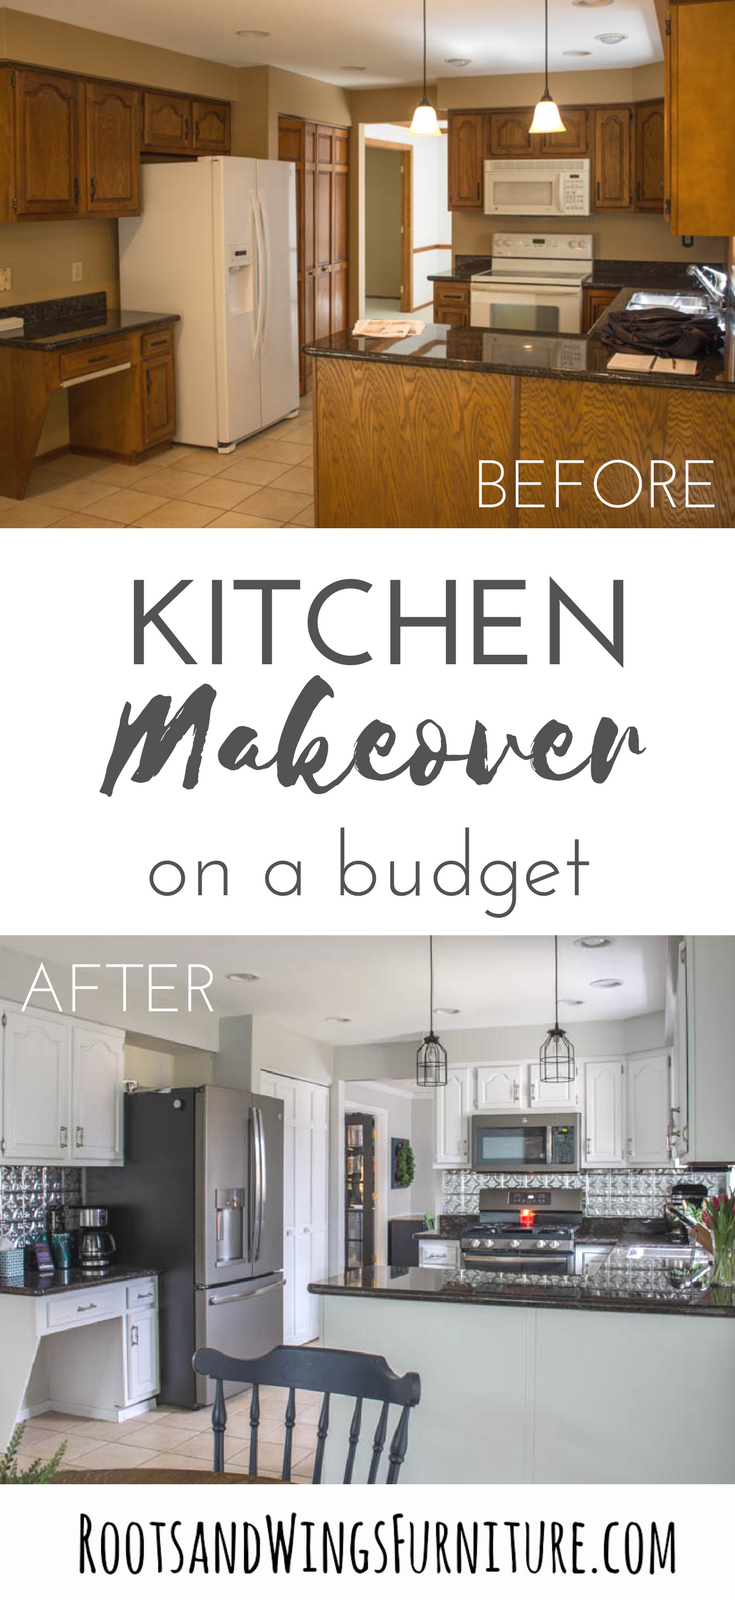 Kitchen Makeover Roots and Wings Furniture Before + After.png